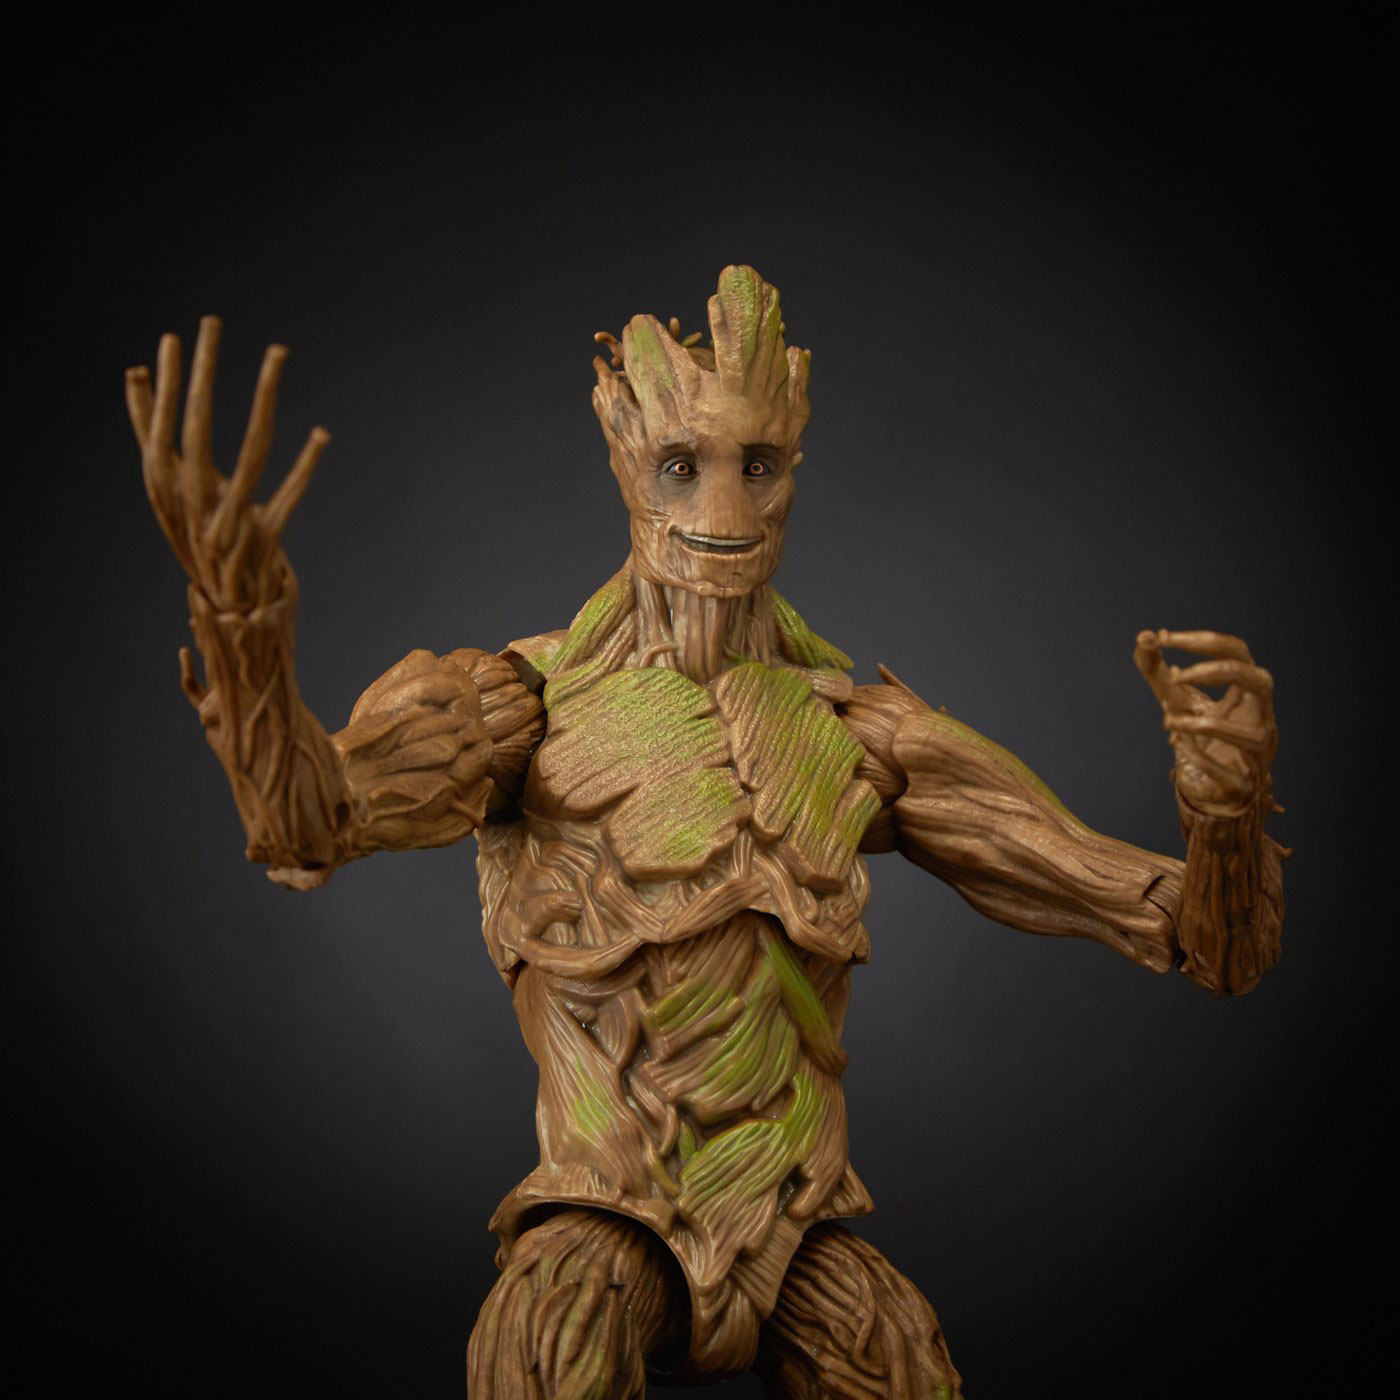 marvel-legends-groot-evolution-action-figure-set-4